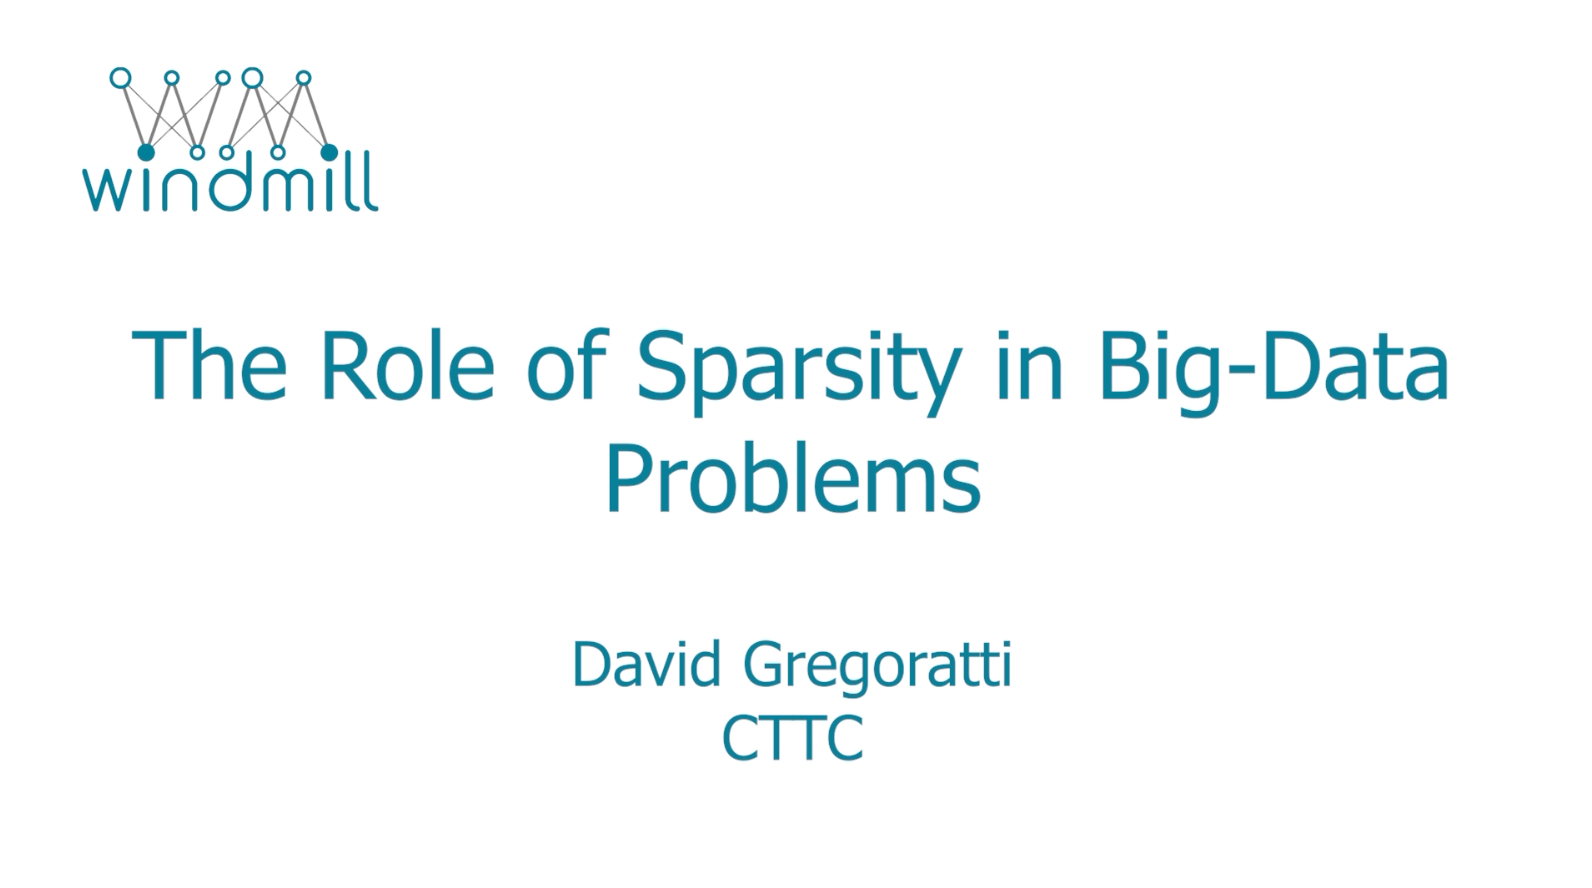 The Role of Sparsity in Big-Data Problems